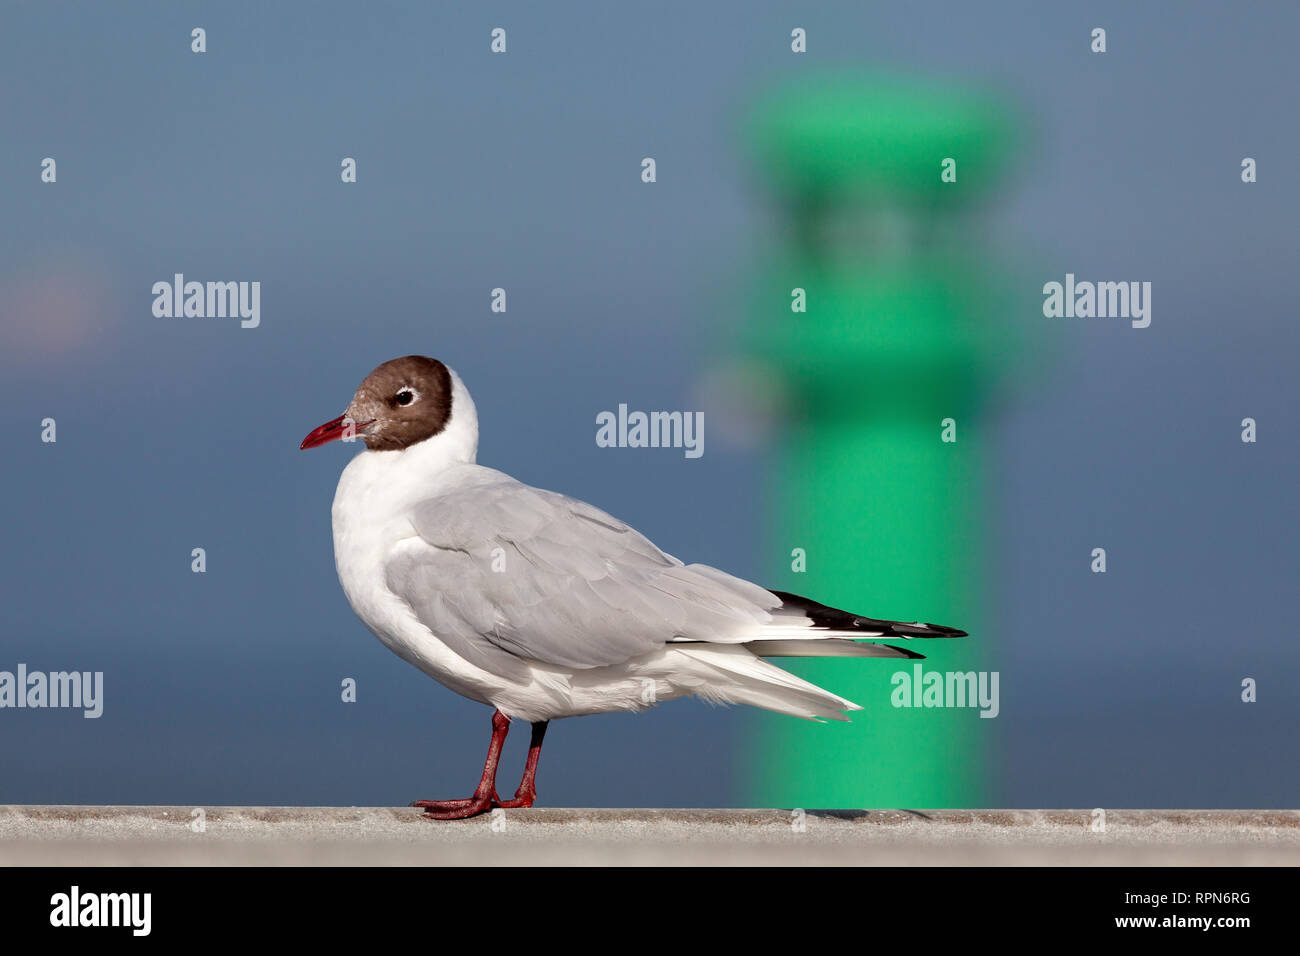 zoology / animals, bird / avian, Black-headed Gull (Chroicocephalus ridibundus), in front of a beacon,, Additional-Rights-Clearance-Info-Not-Available Stock Photo